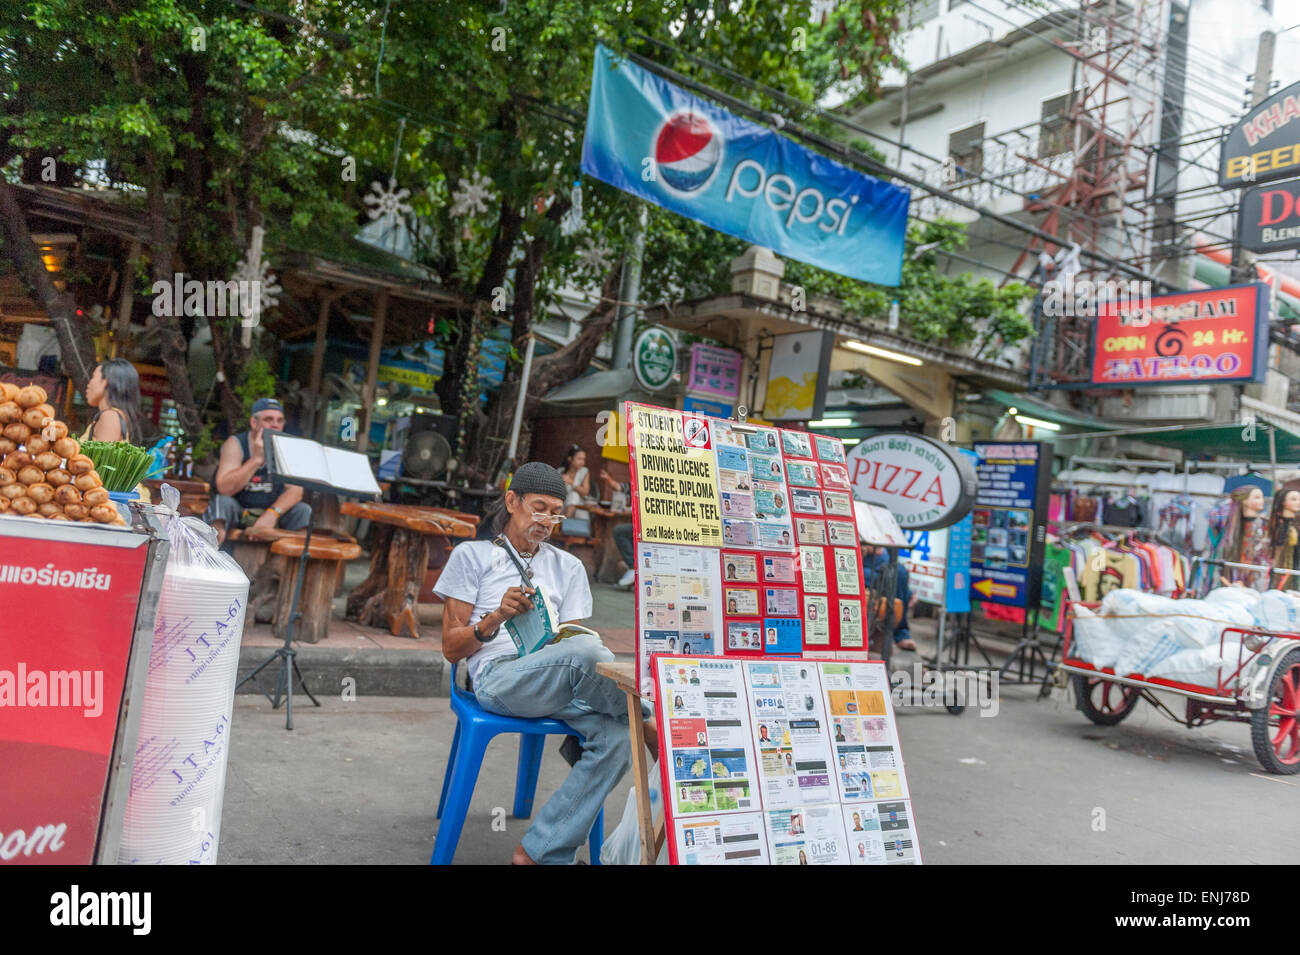 Thailand - Market Alamy Photo Bangkok Road San Id Stall 82150109 Stock Khao Fake